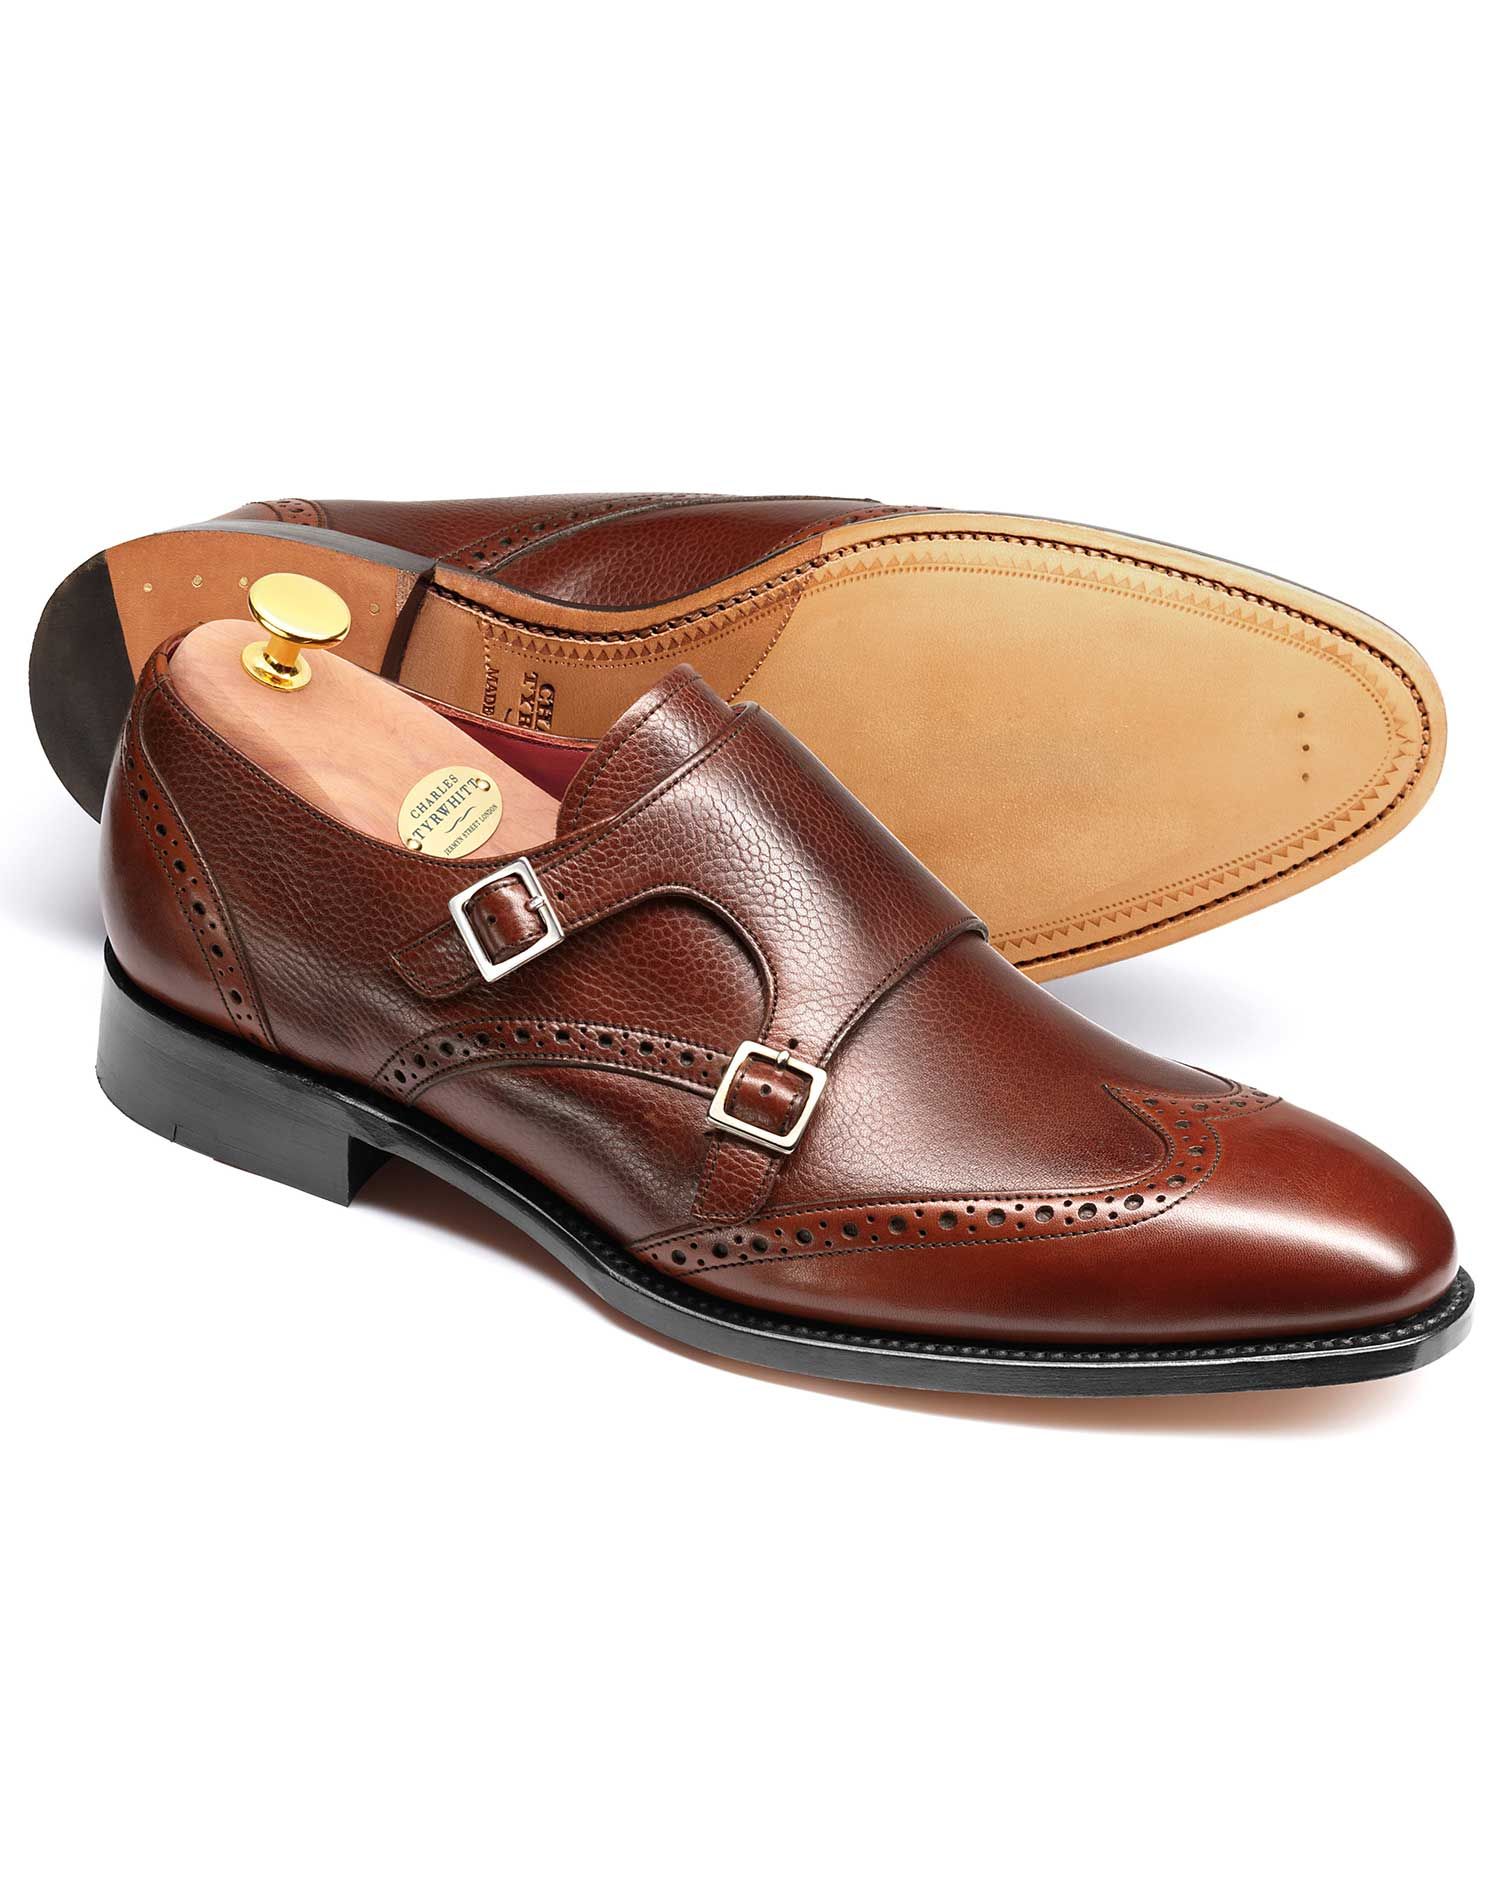 Brown Edmonton Calf Leather Toe Cap Brogue Monk Shoes Size 11 R by Charles Tyrwhitt